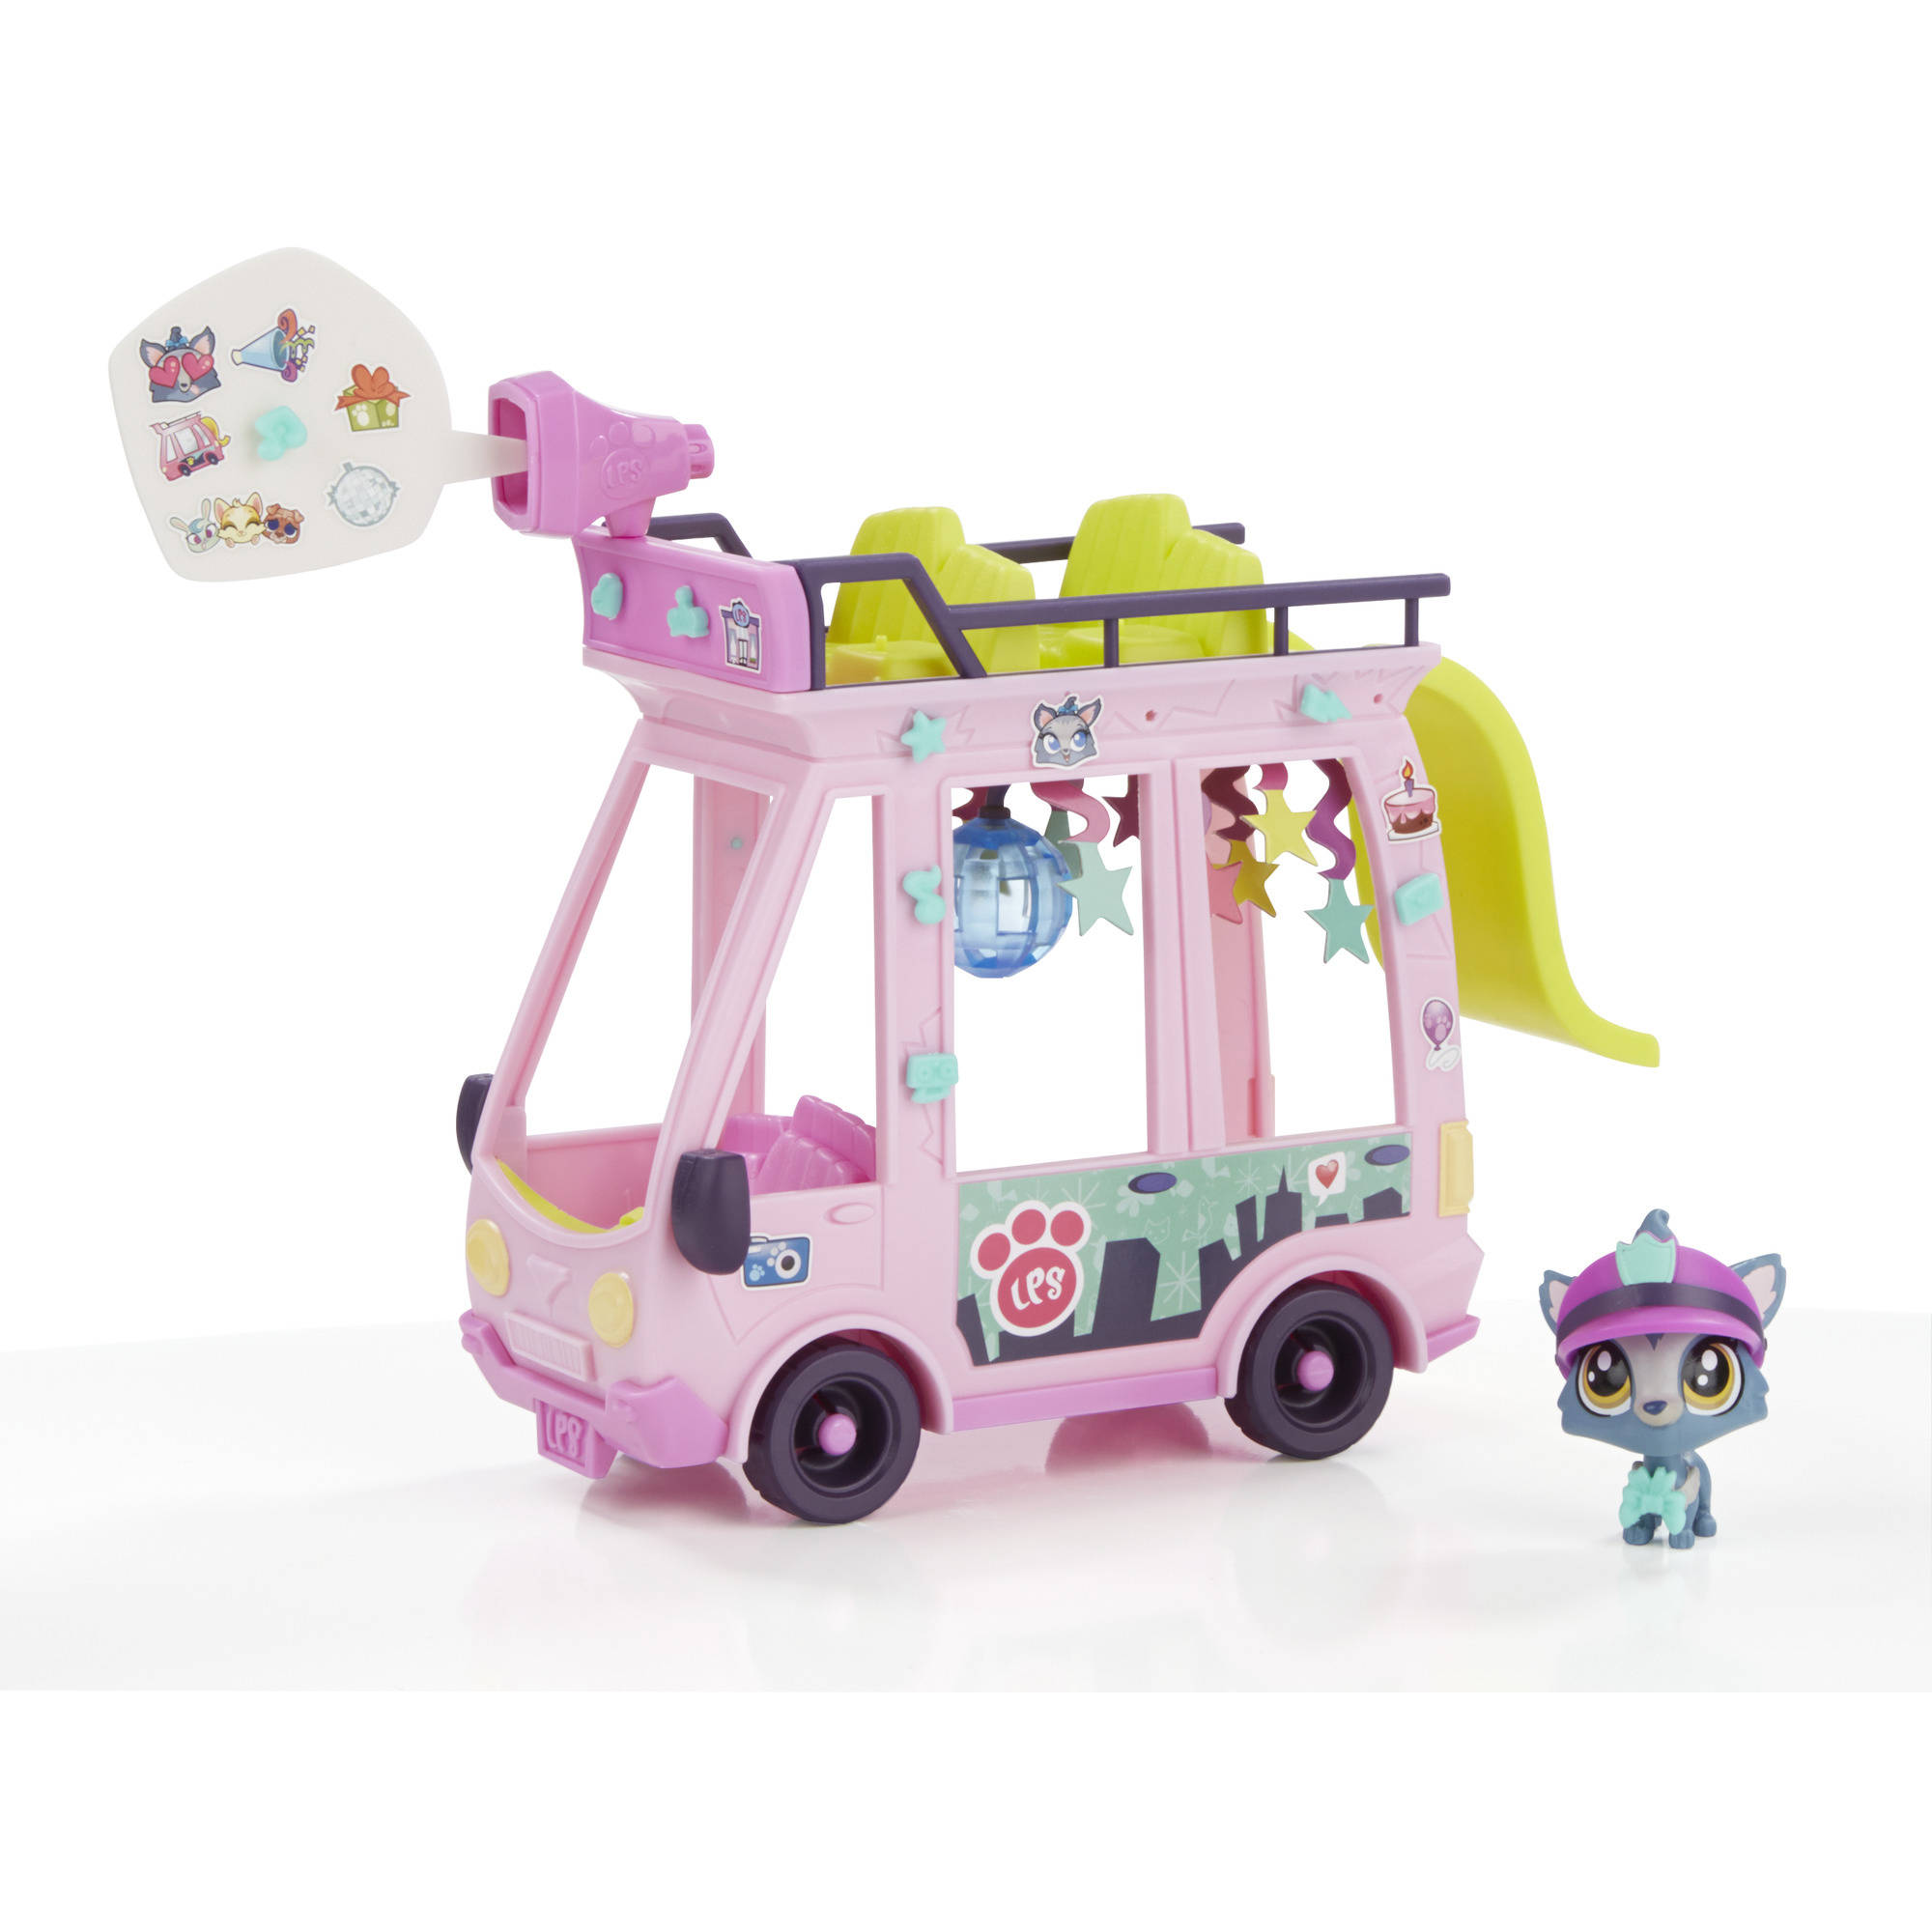 Littlest Pet Shop LPS Shuttle   Walmart.com